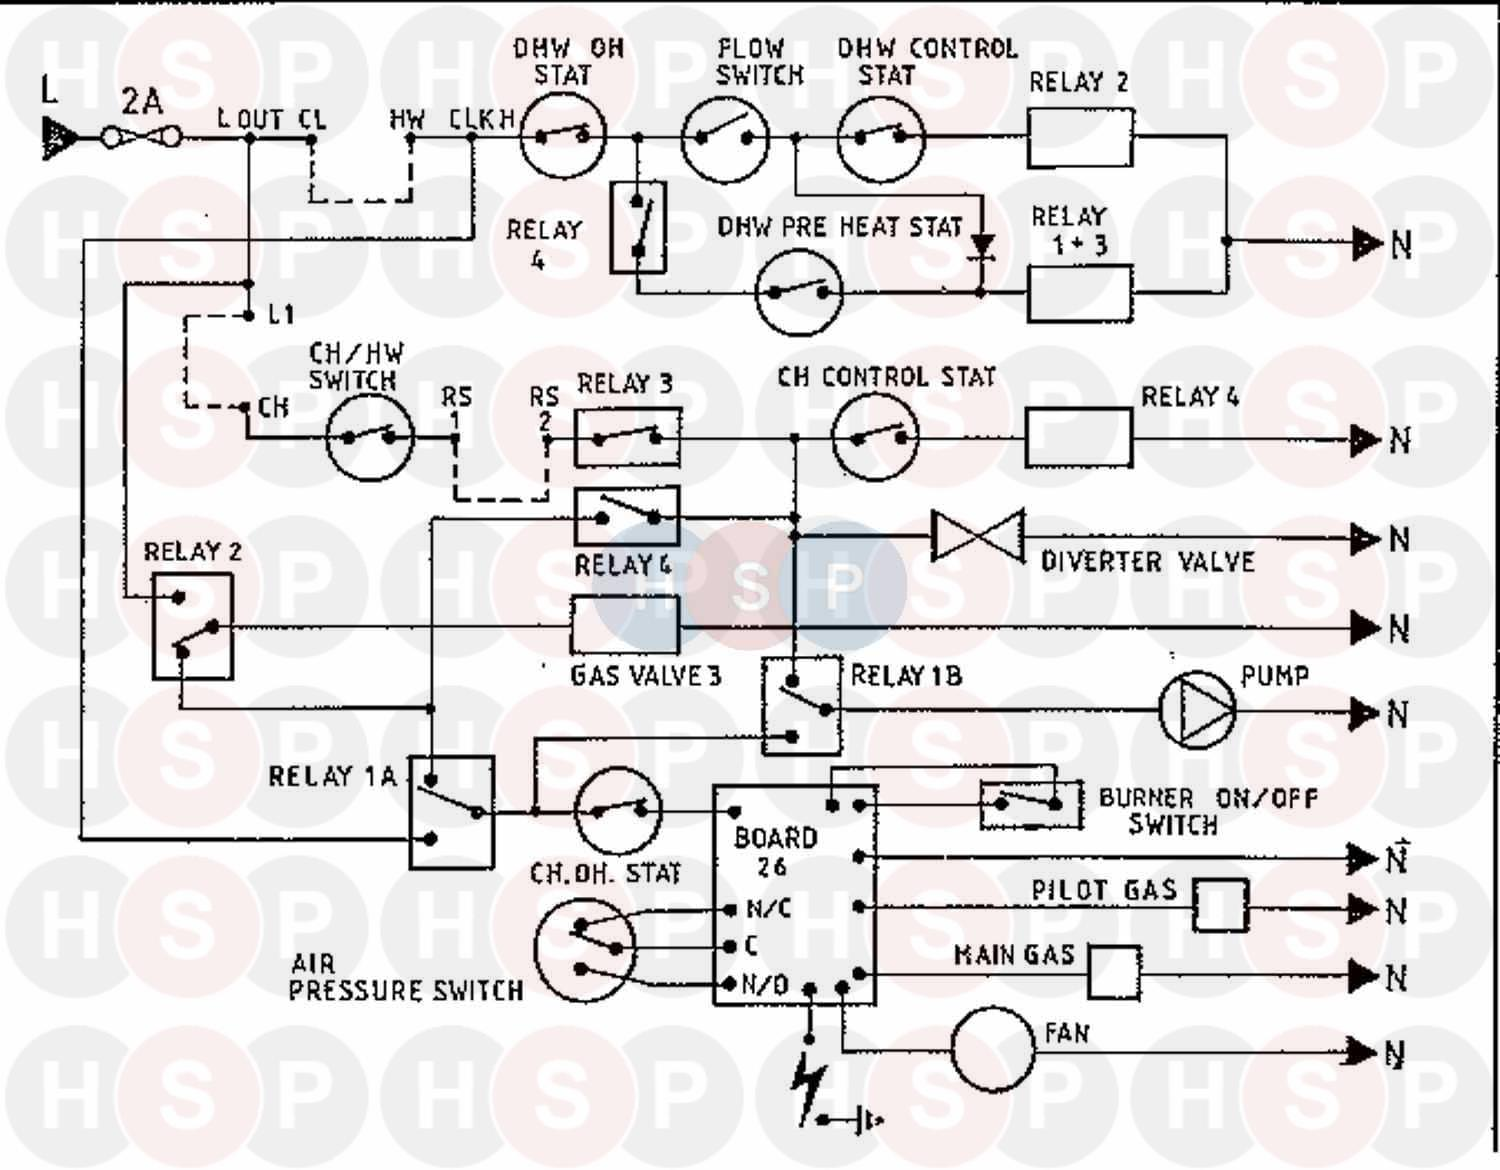 Ideal Classic Combi Nf80 Wiring Diagram 1 Heating Spare Air Pressor Click The To Open It On A New Page